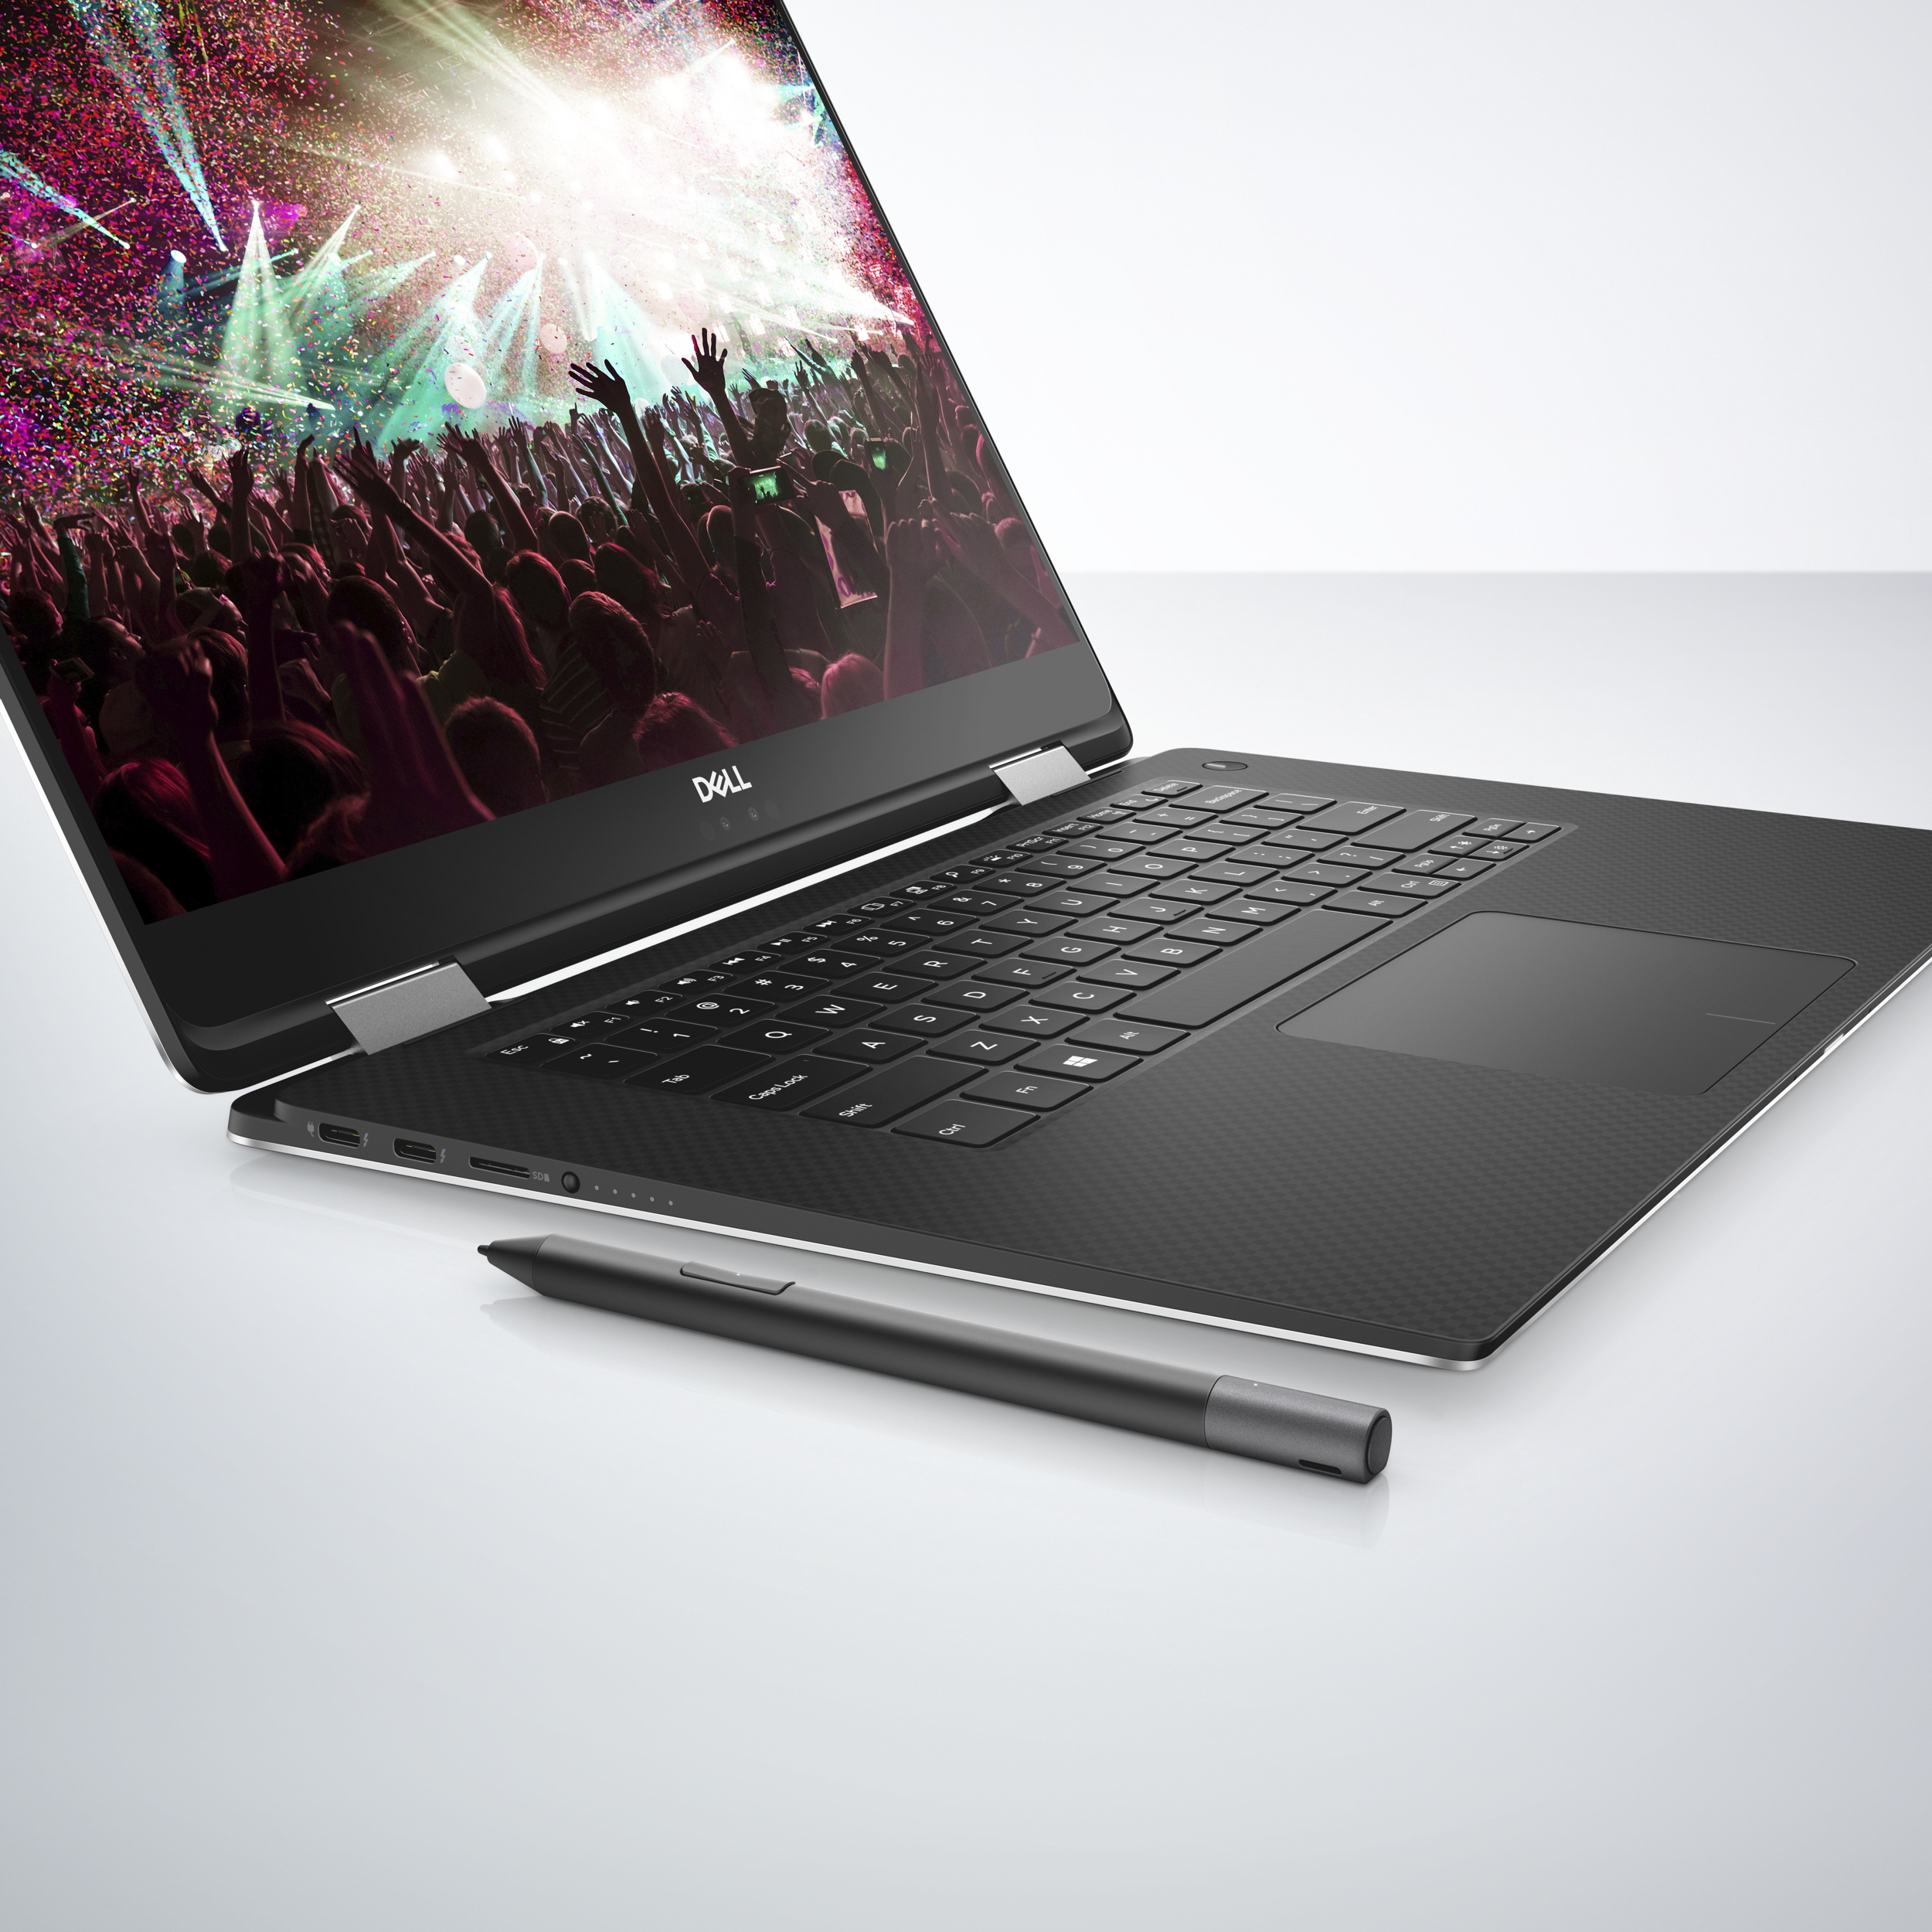 Frank Azor: No more loud fans for the Dell XPS 15 9575 2-in